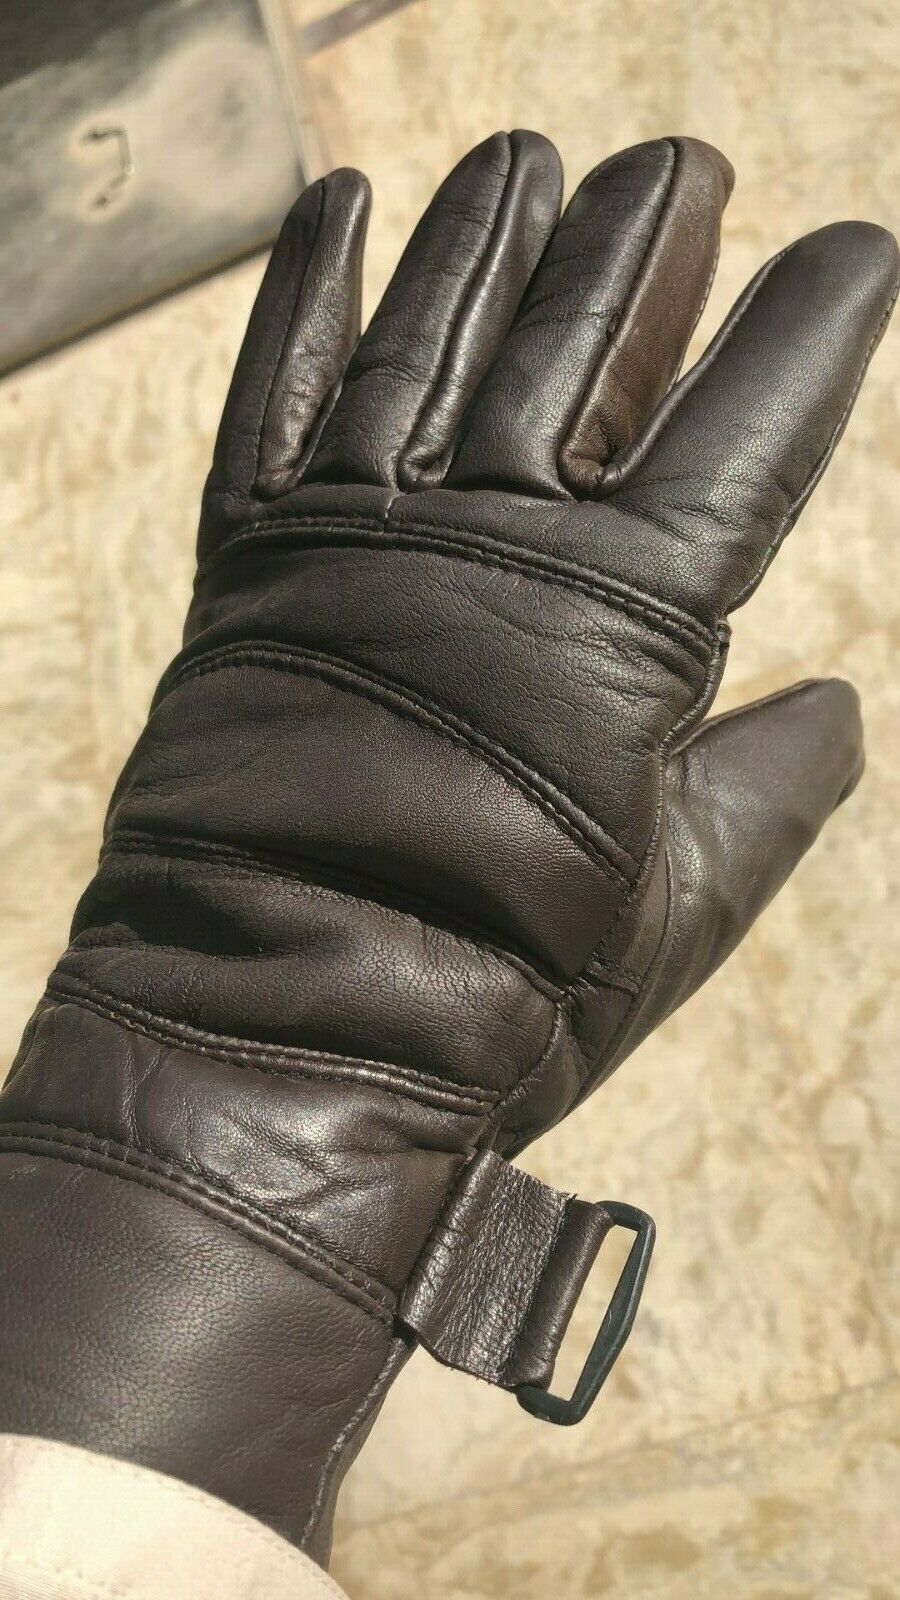 Pair Autumn and winter fashion leather pair gloves for men in black and brown...